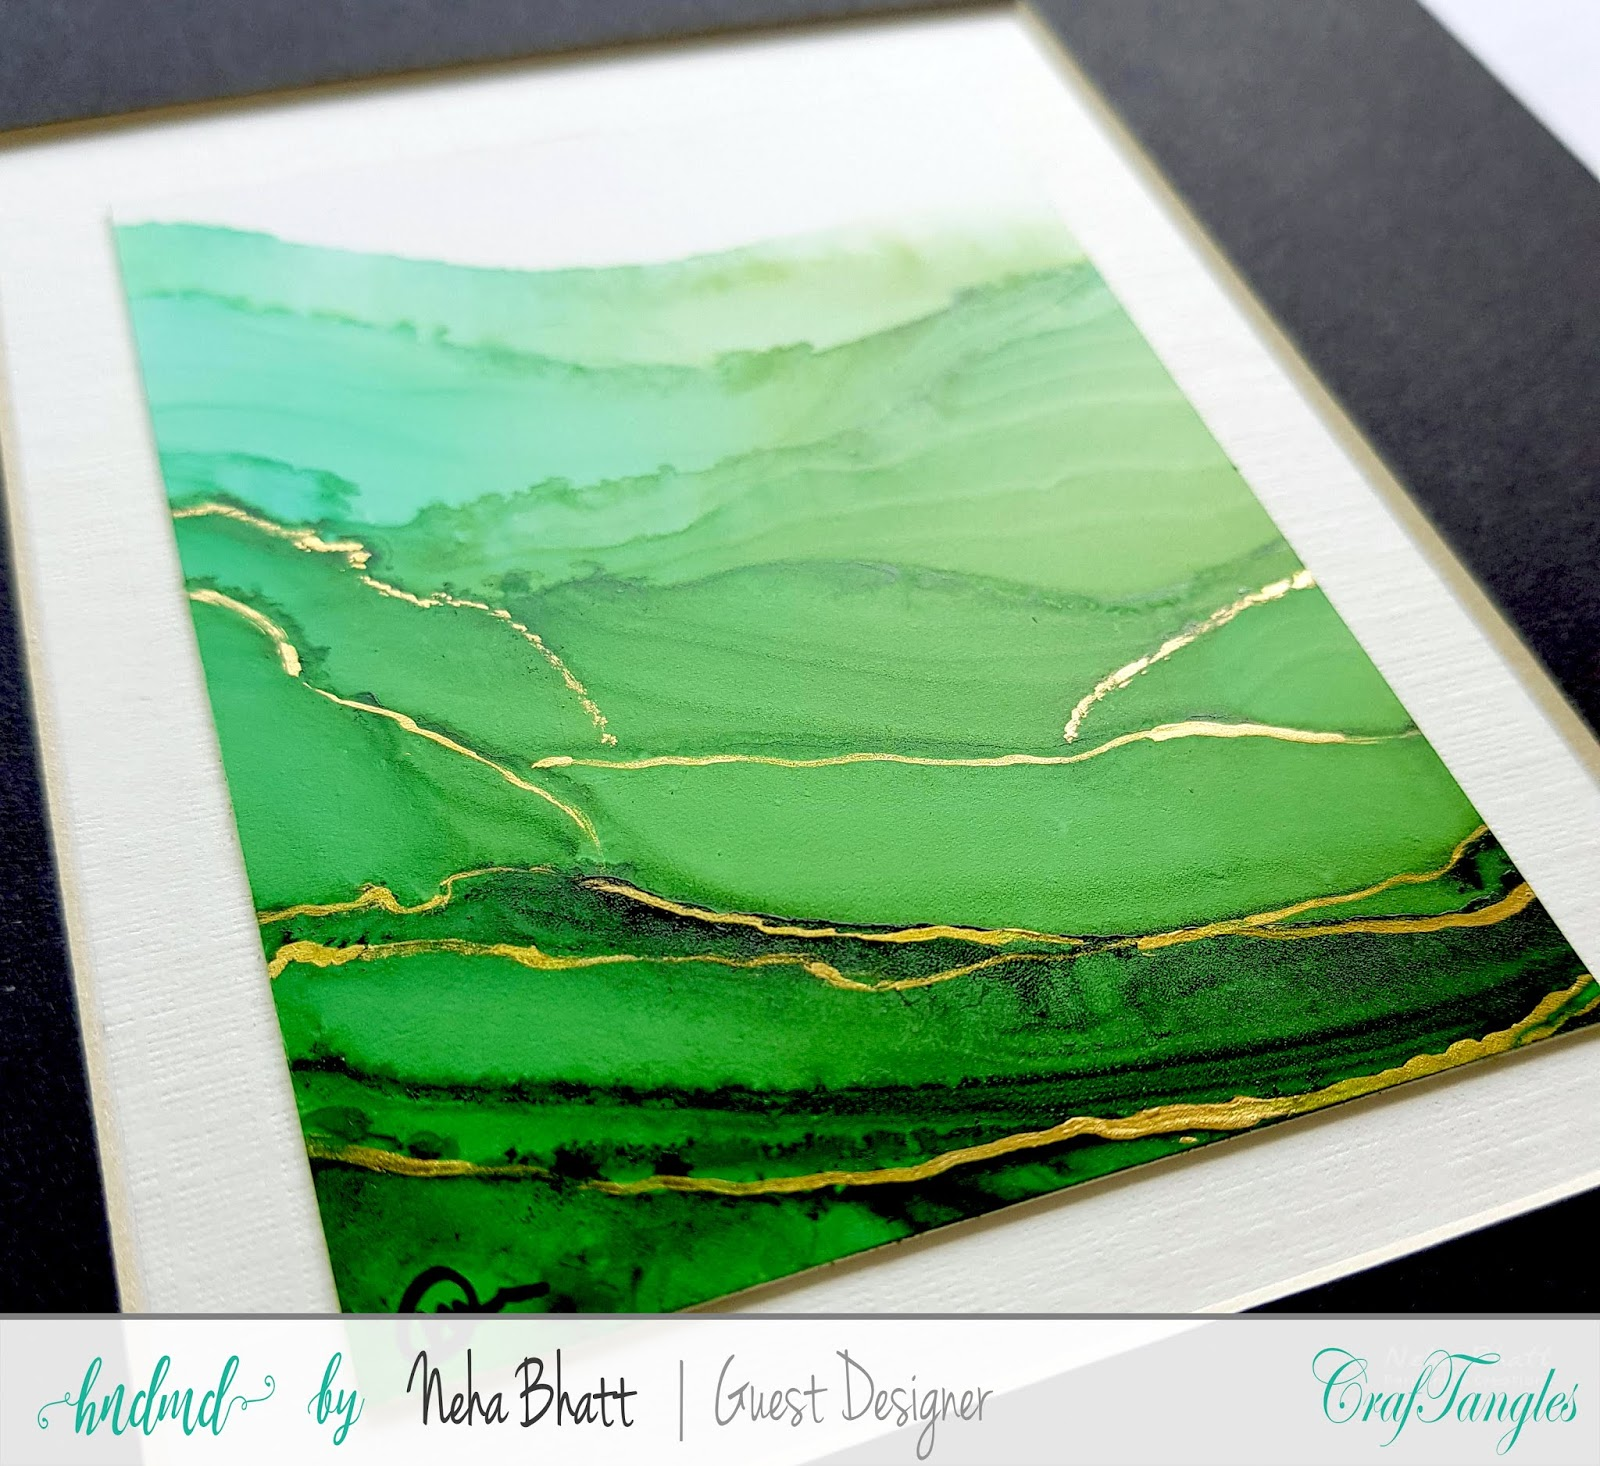 Some experiments with CrafTangles alcohol ink papers by Neha Bhatt [Periwinkle Creations] 3